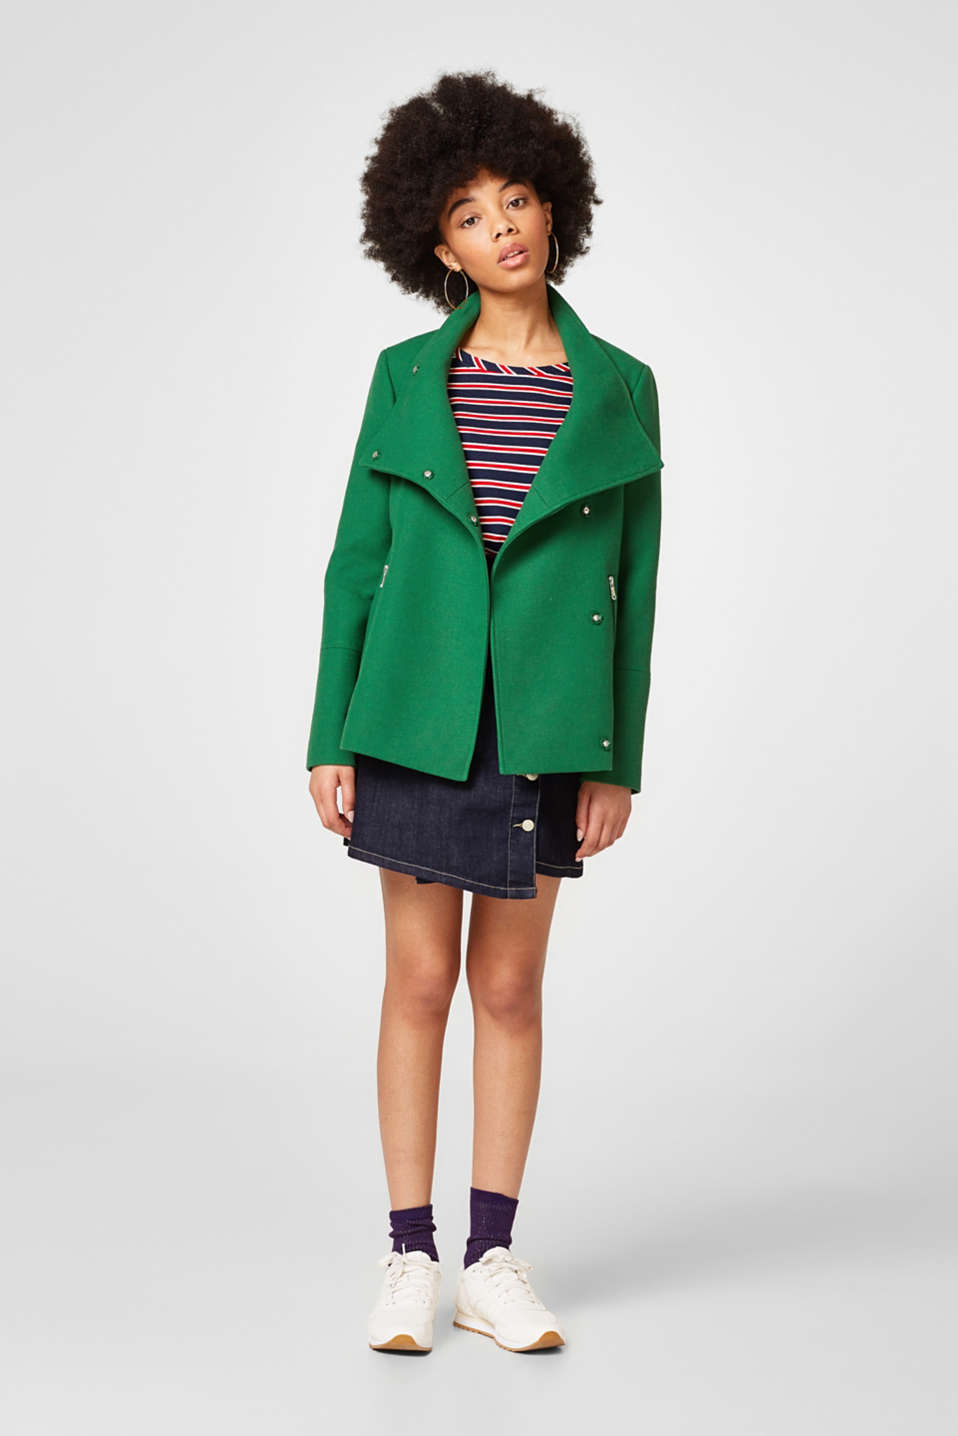 Short jacket + an adjustable stand-up collar